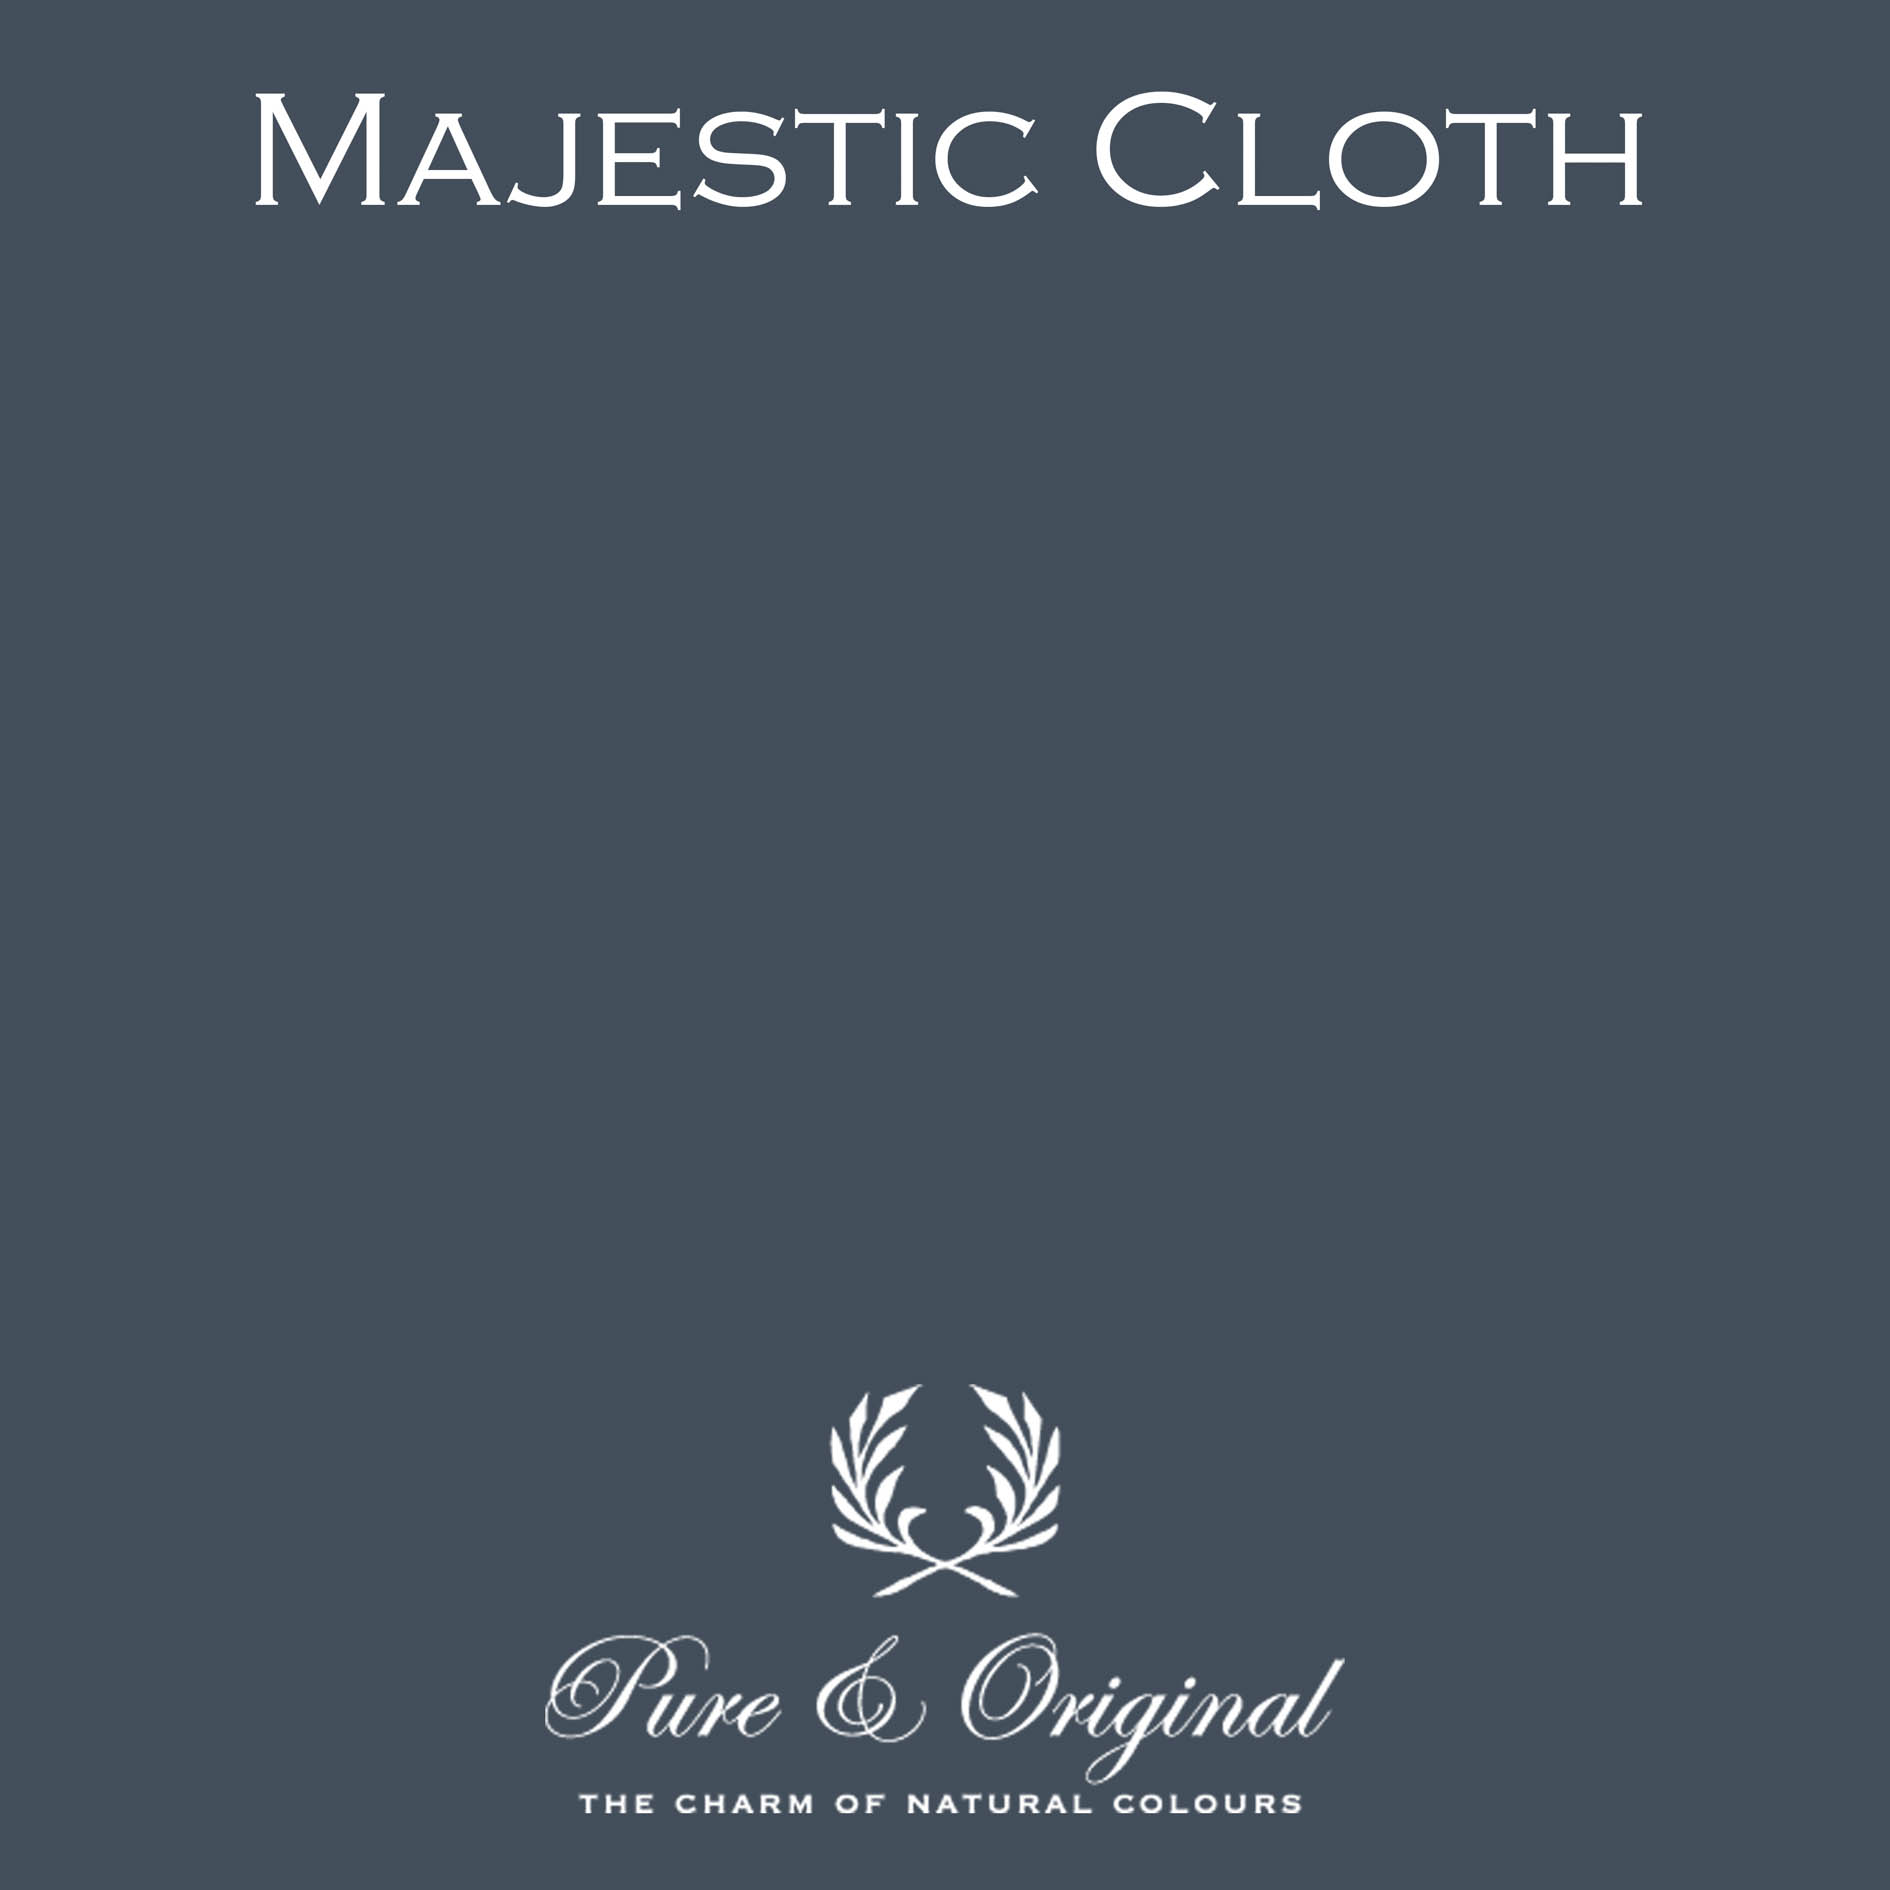 Pure & Original Majestic Cloth